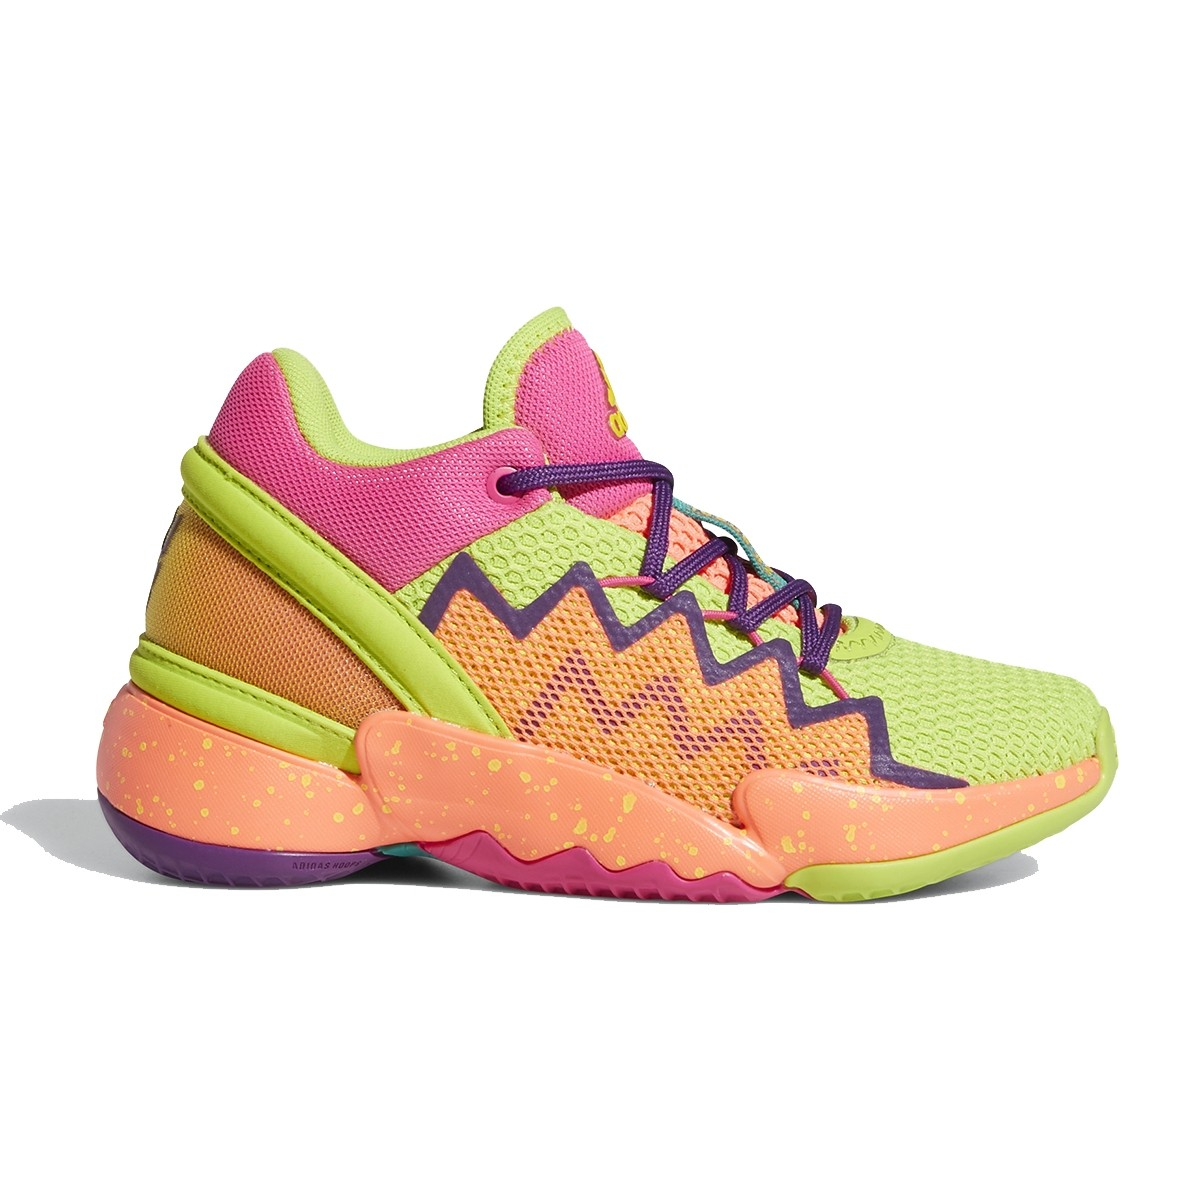 ADIDAS D.O.N. Issue 2 C 'Multi Color'